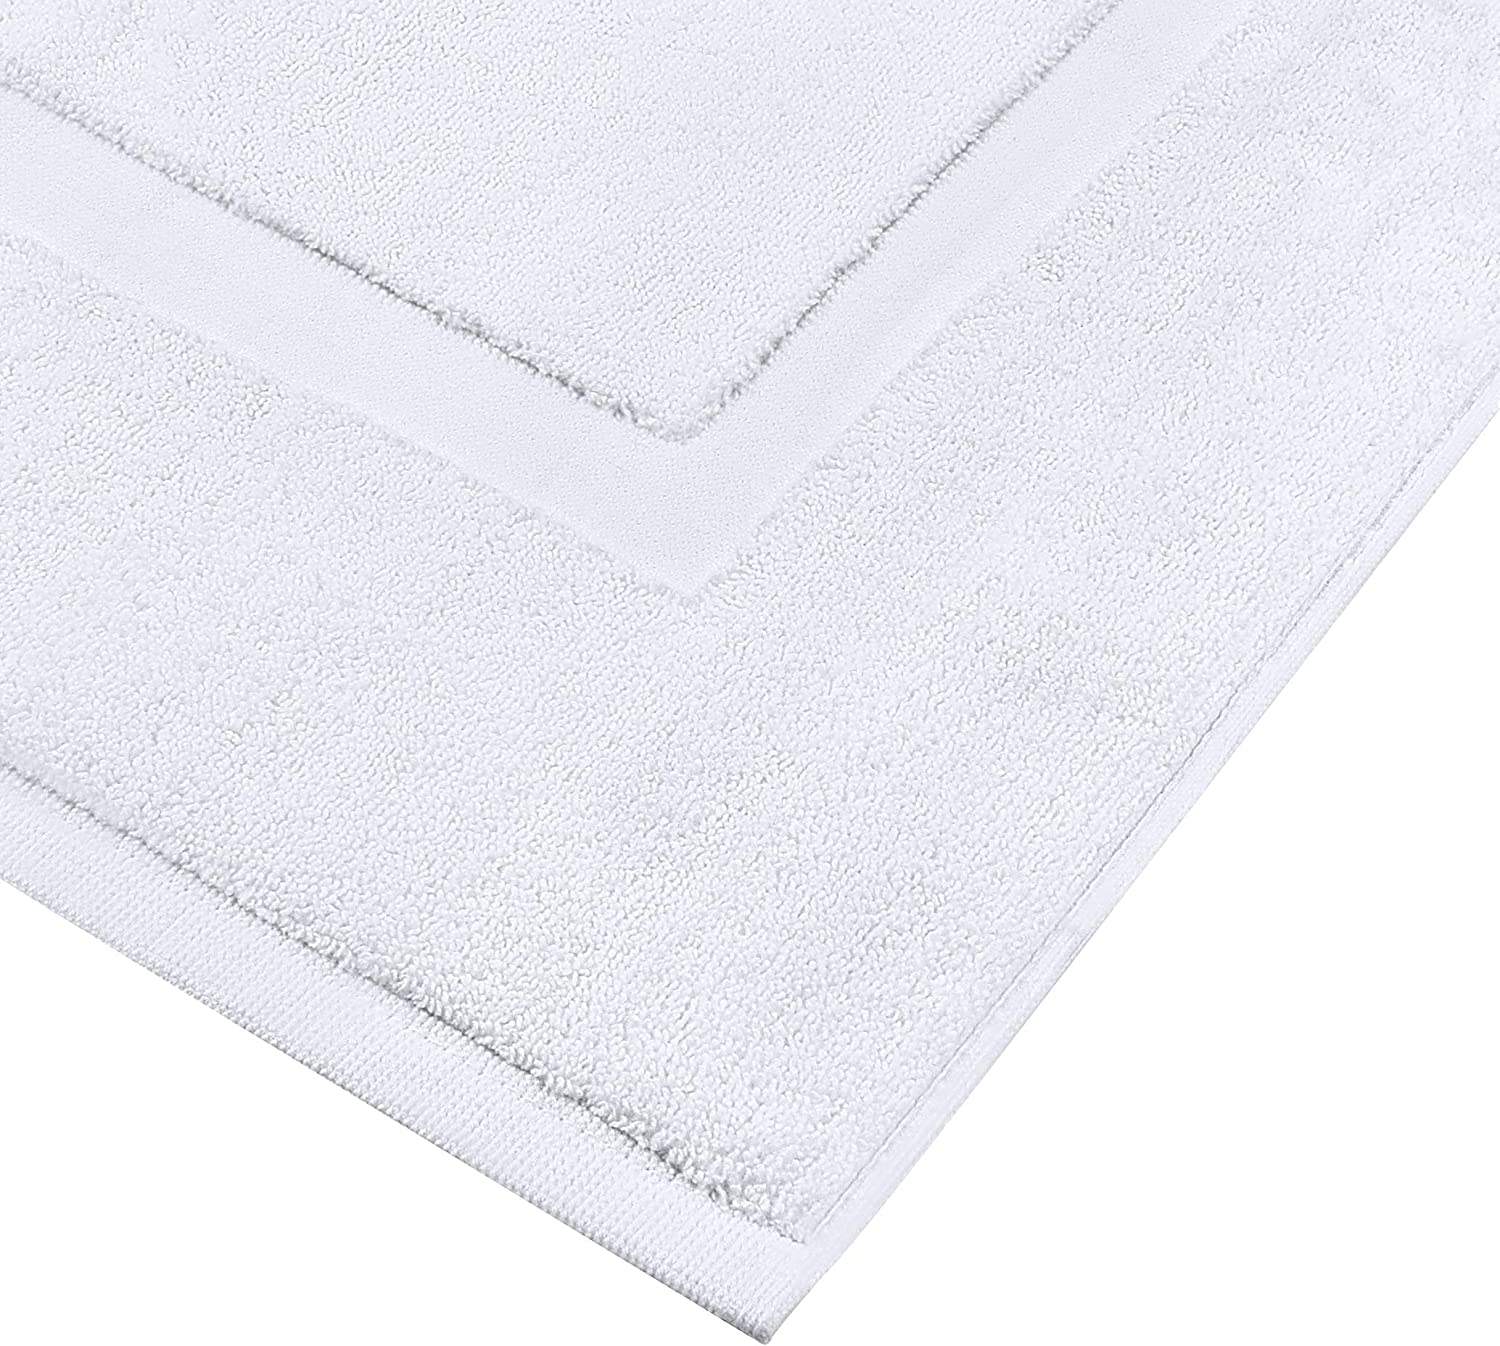 Utopia Towels Cotton Banded Bath Mats, White, [Not a Bathroom Rug], 21 x 34 Inches, 100% Ring Spun Cotton - Highly Absorbent and Machine Washable Shower Bathroom Floor Mat (Pack of 2): Home & Kitchen